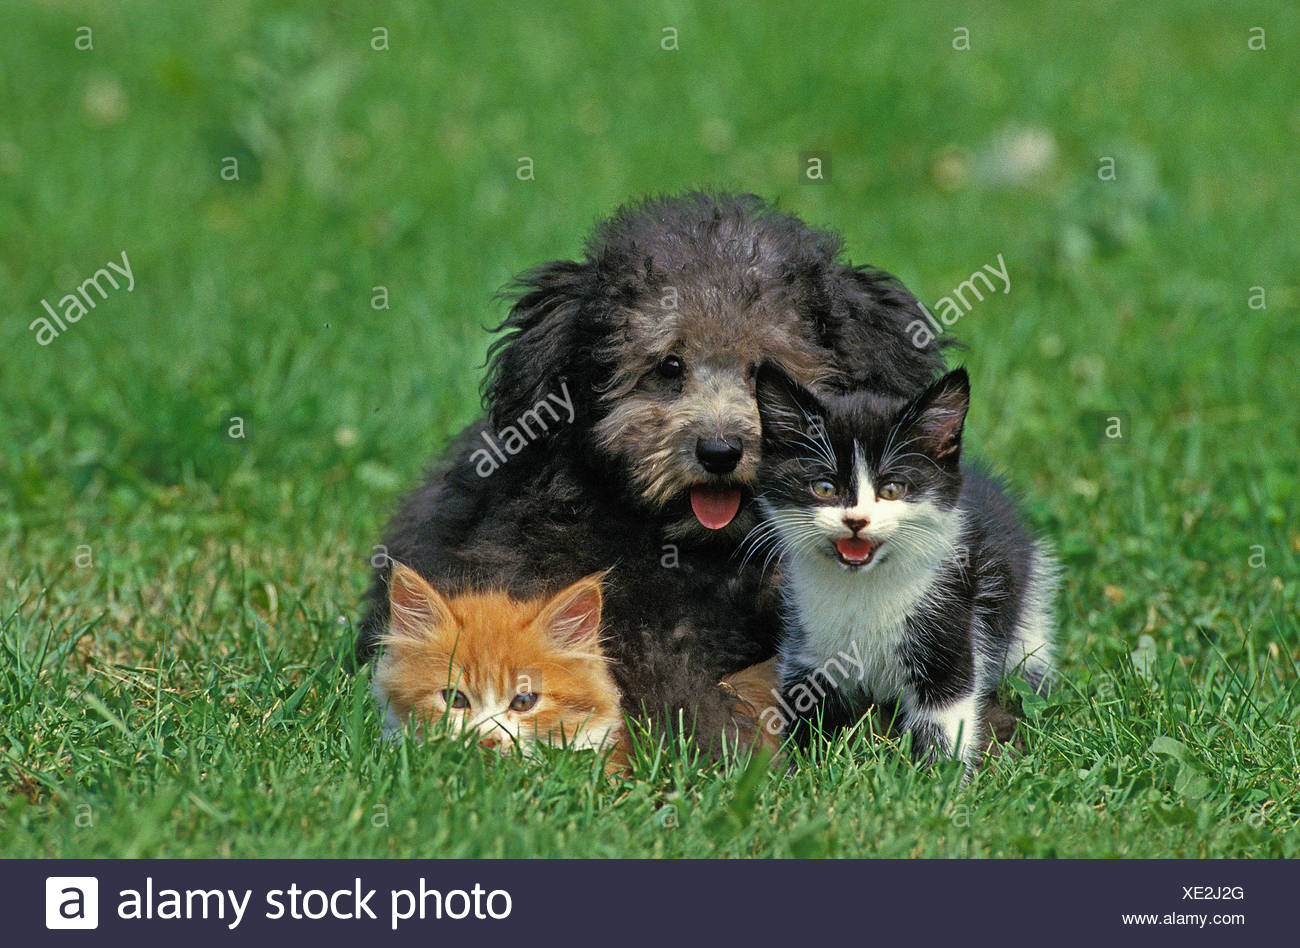 Grey Miniature Poodle Pup with Kittens on Grass - Stock Image